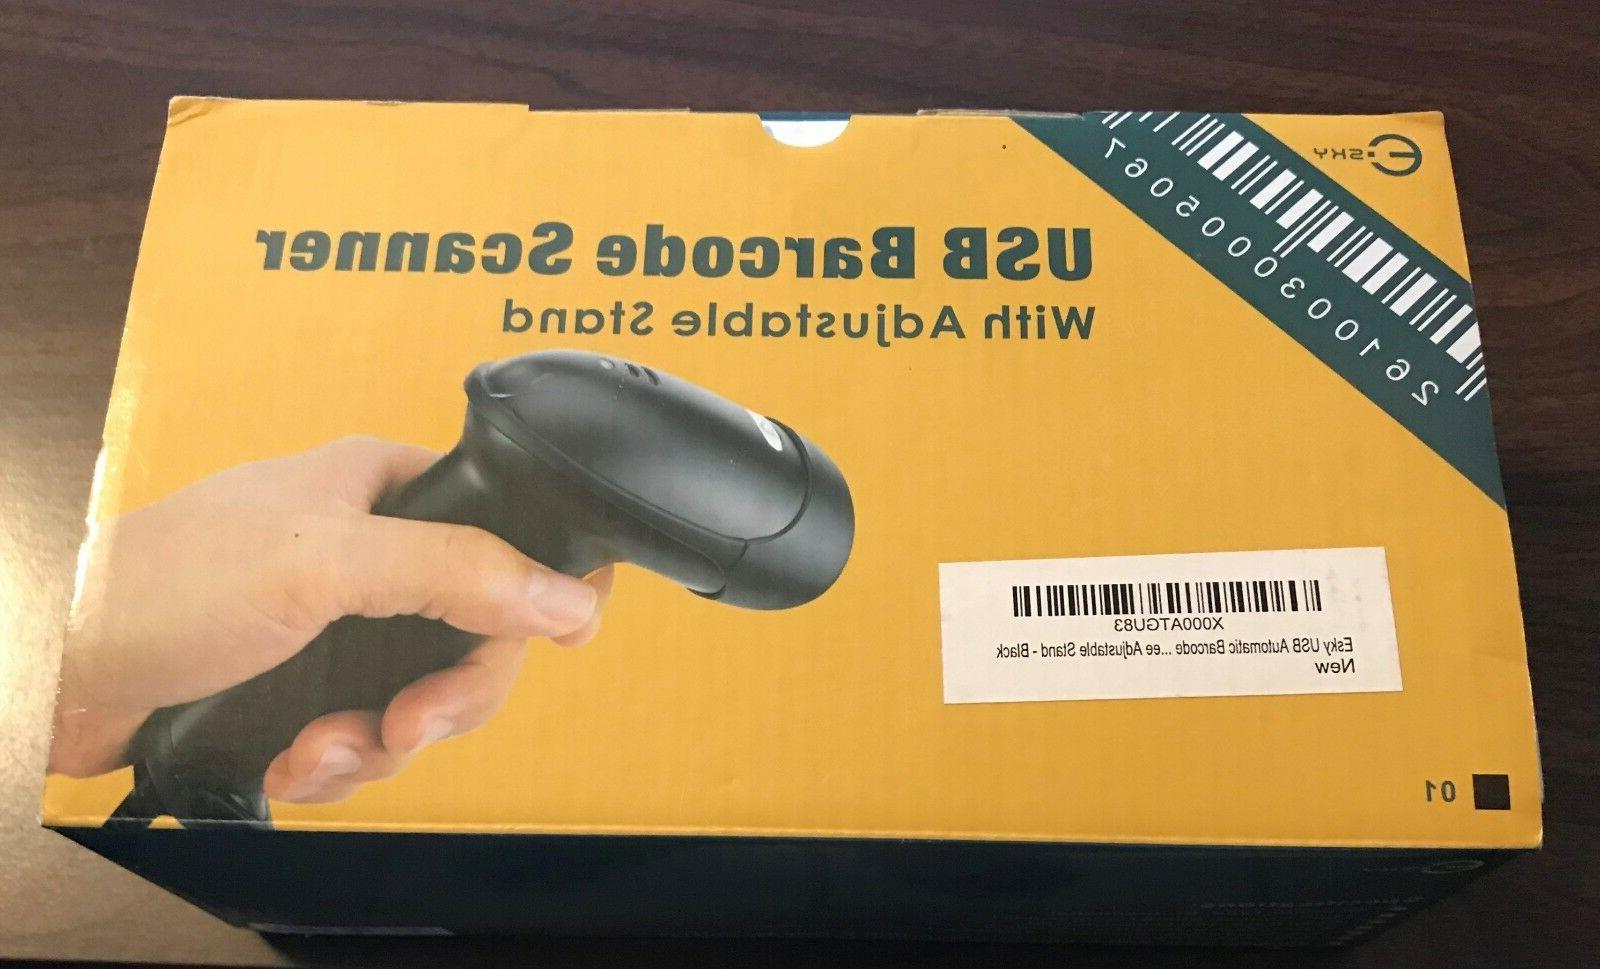 Esky USB Automatic Handheld Barcode Scanner/Reader With Free